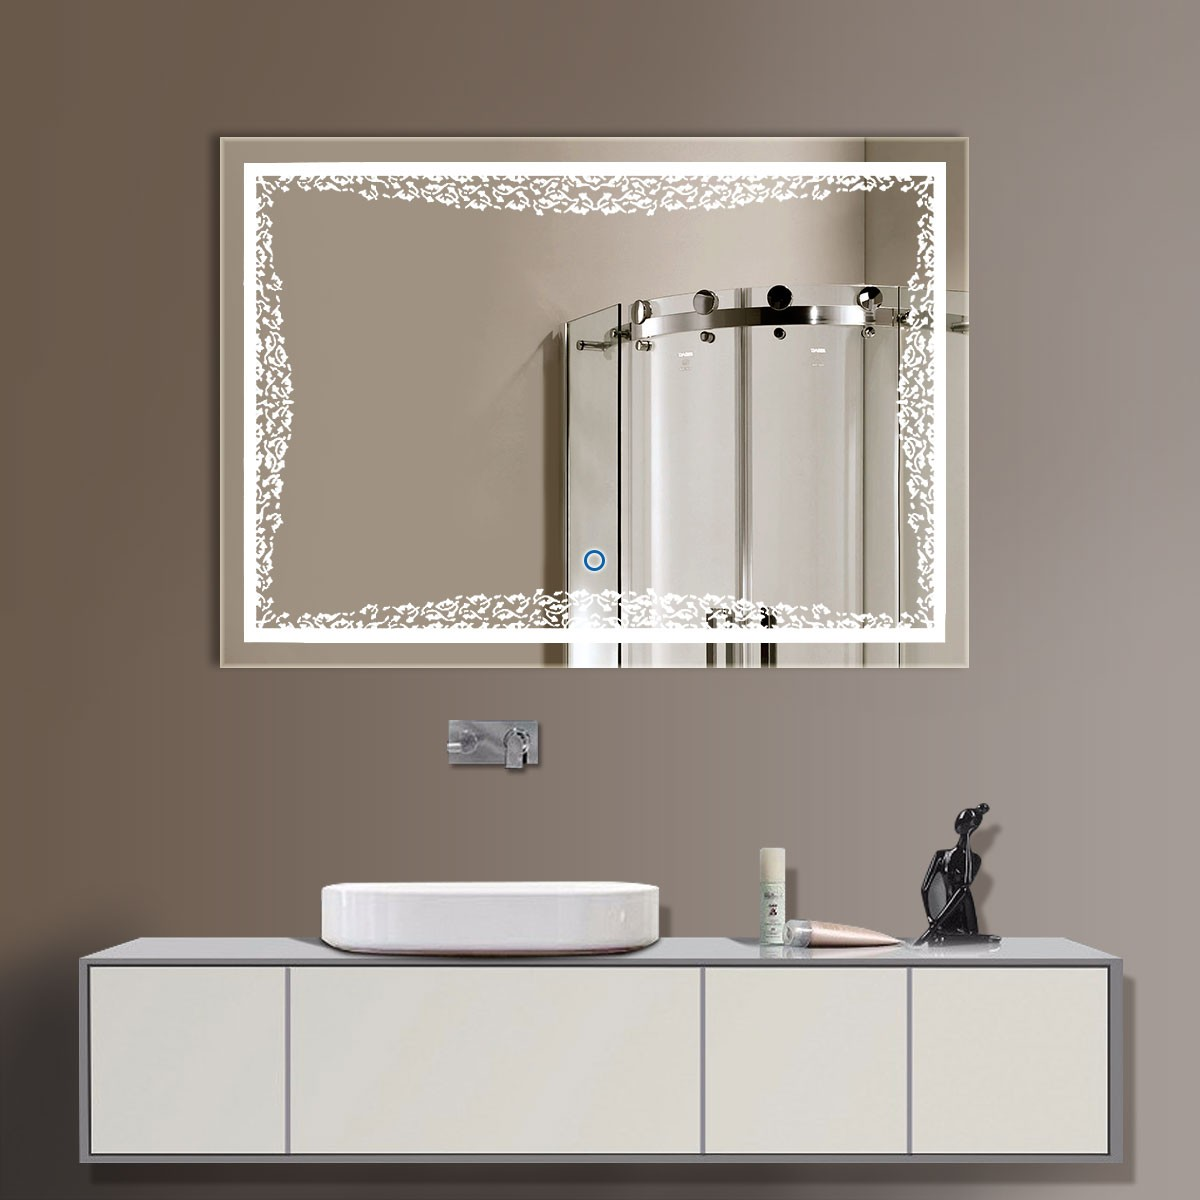 32 x 24 in horizontal led bathroom silvered mirror with touch button dk od n011 decoraport